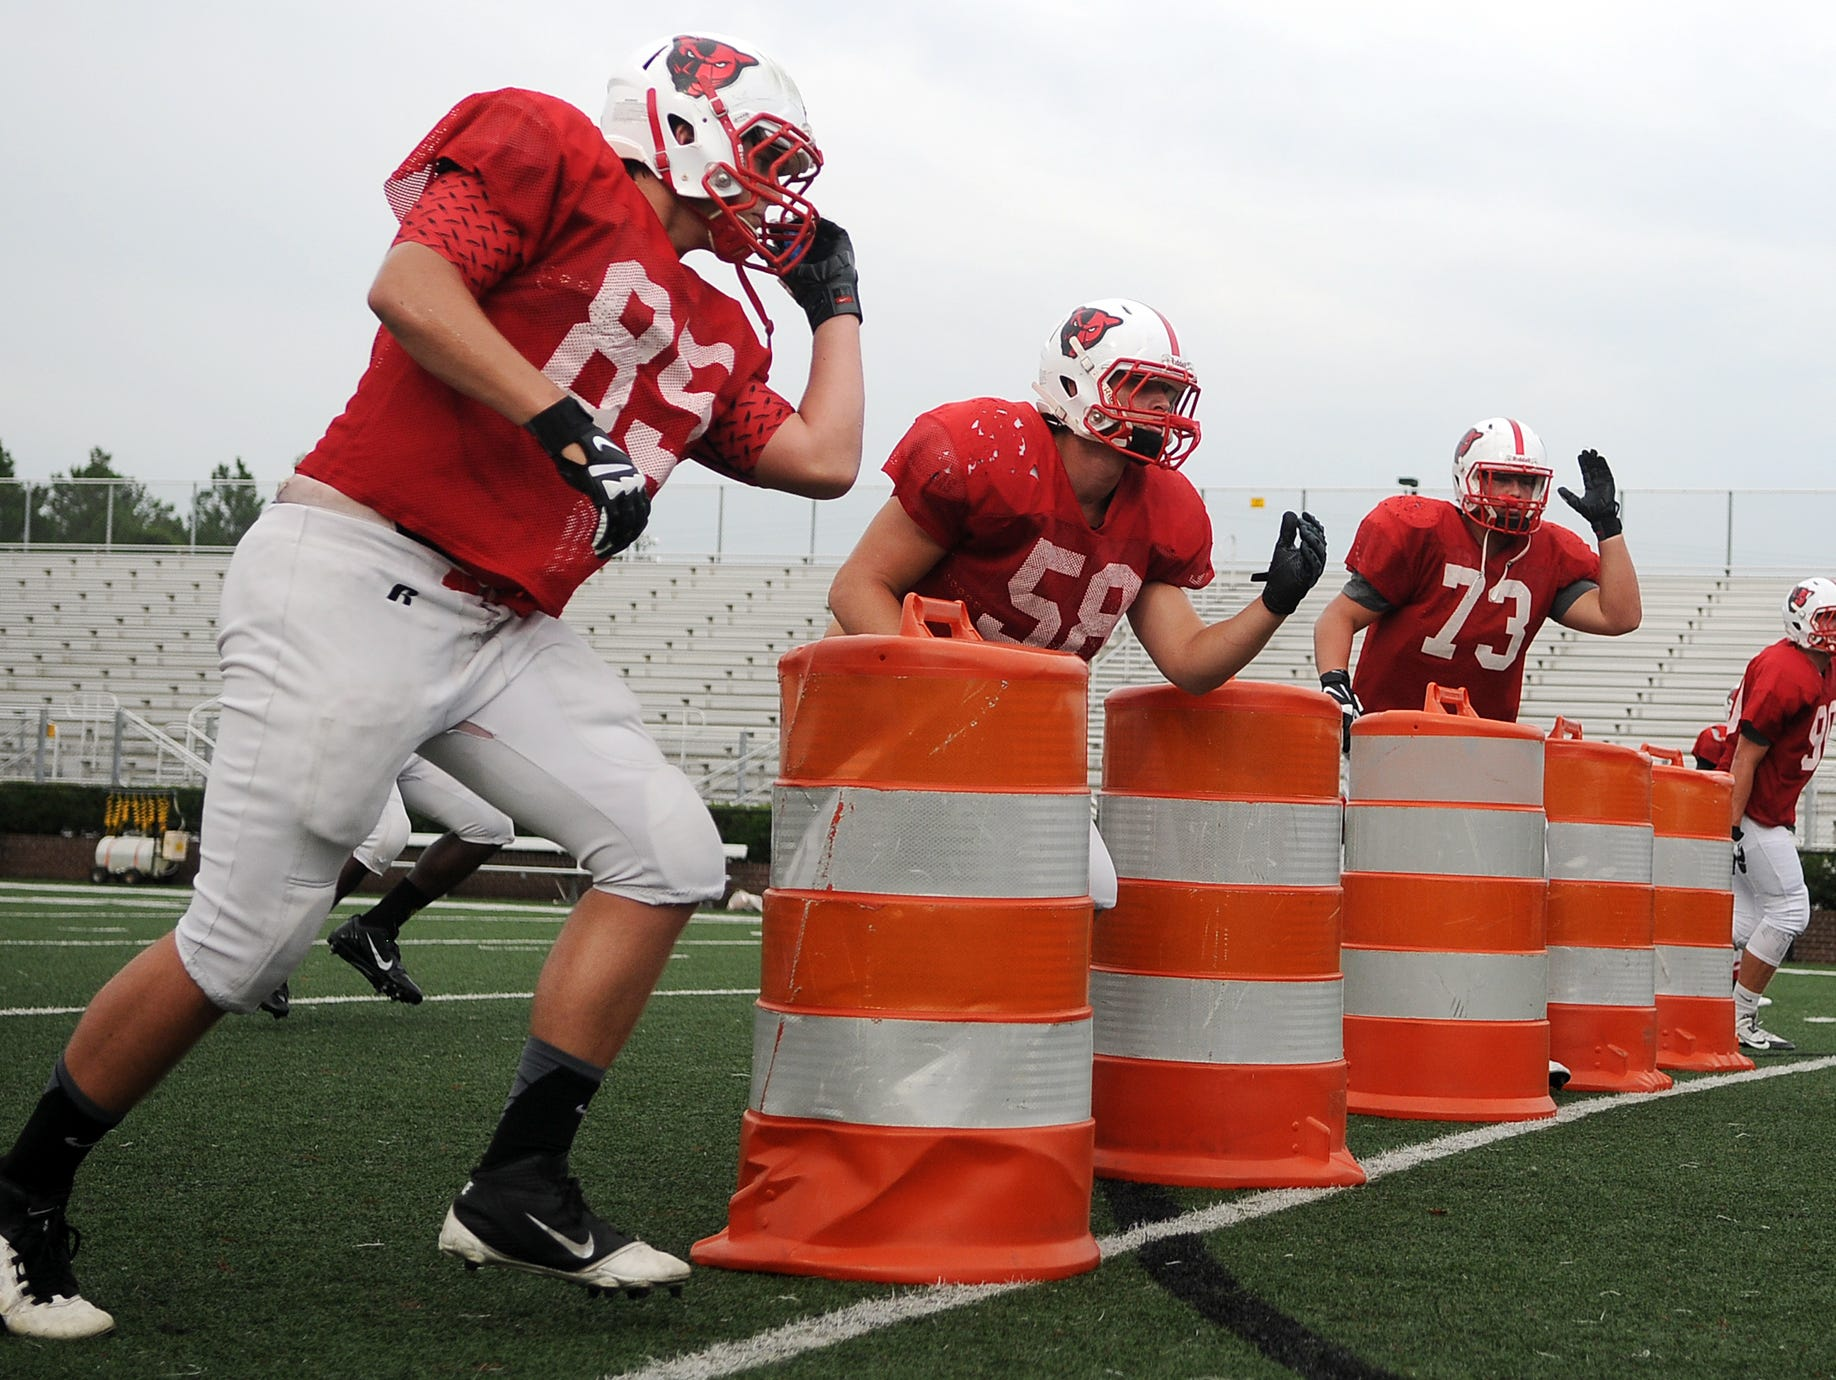 Petal defensive linemen work on pass-rushing techniques during a practice session this week, as the Panthers prepare for their game Saturday at Hattiesburg.